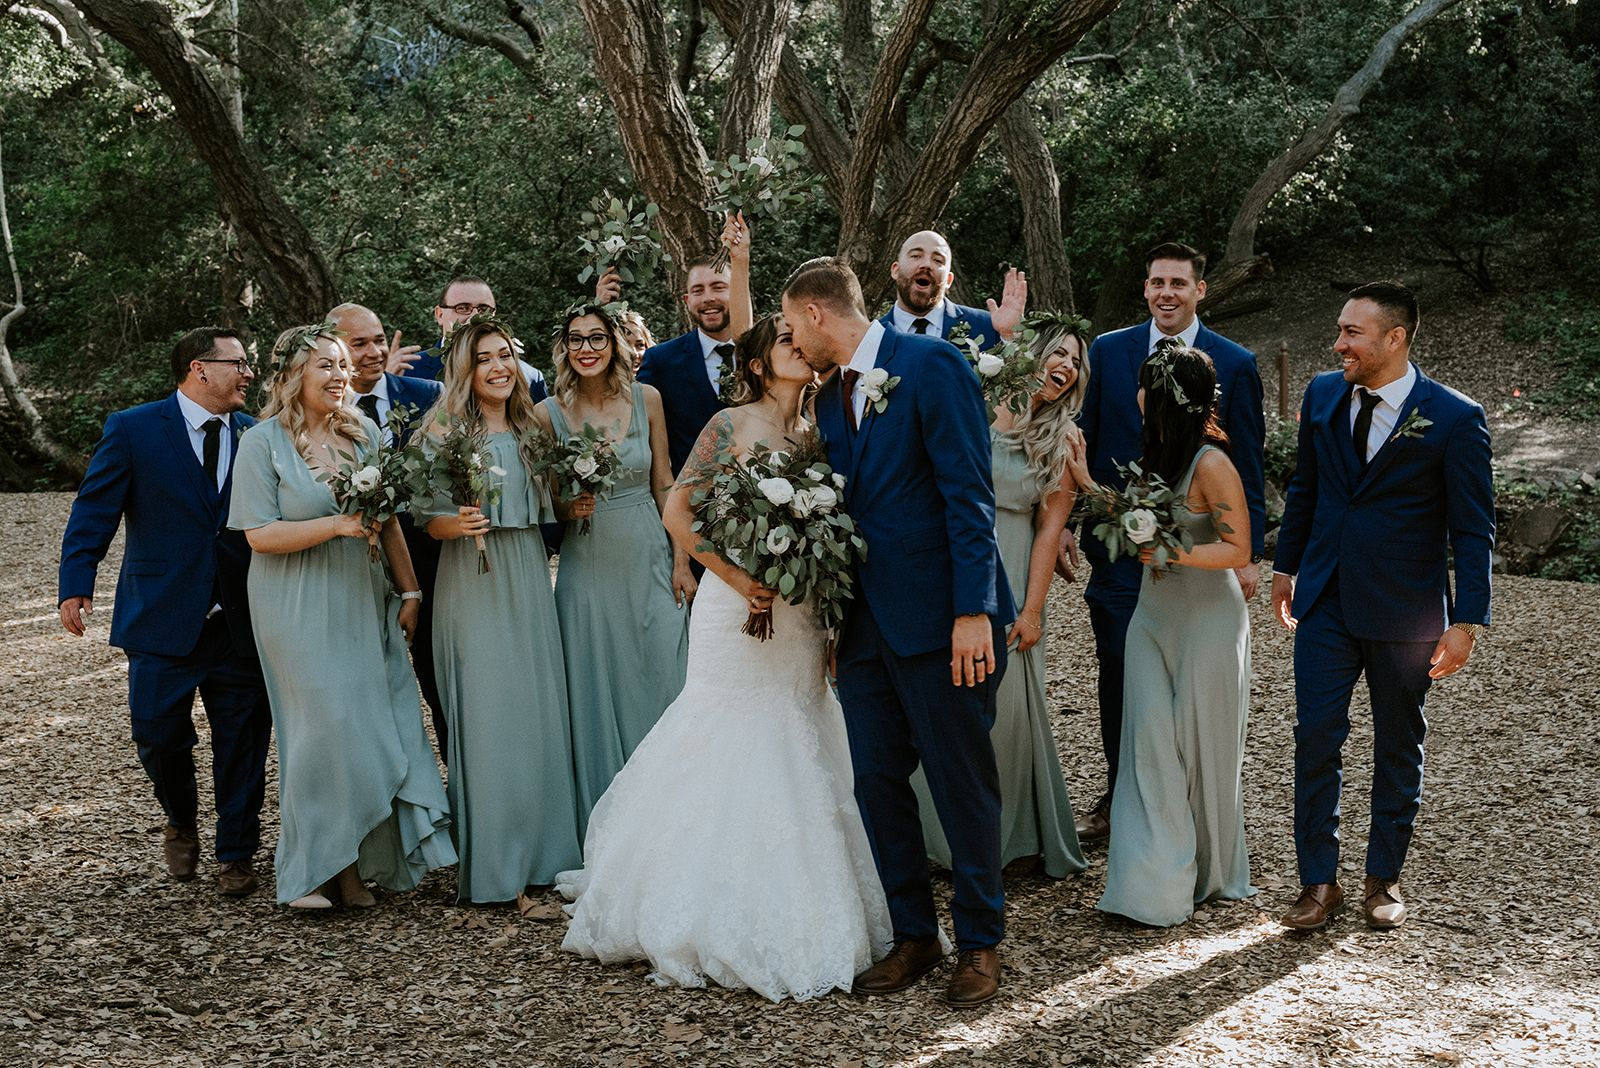 Sage Green Wedding With Lush Greenery Bouquets For A Simple And